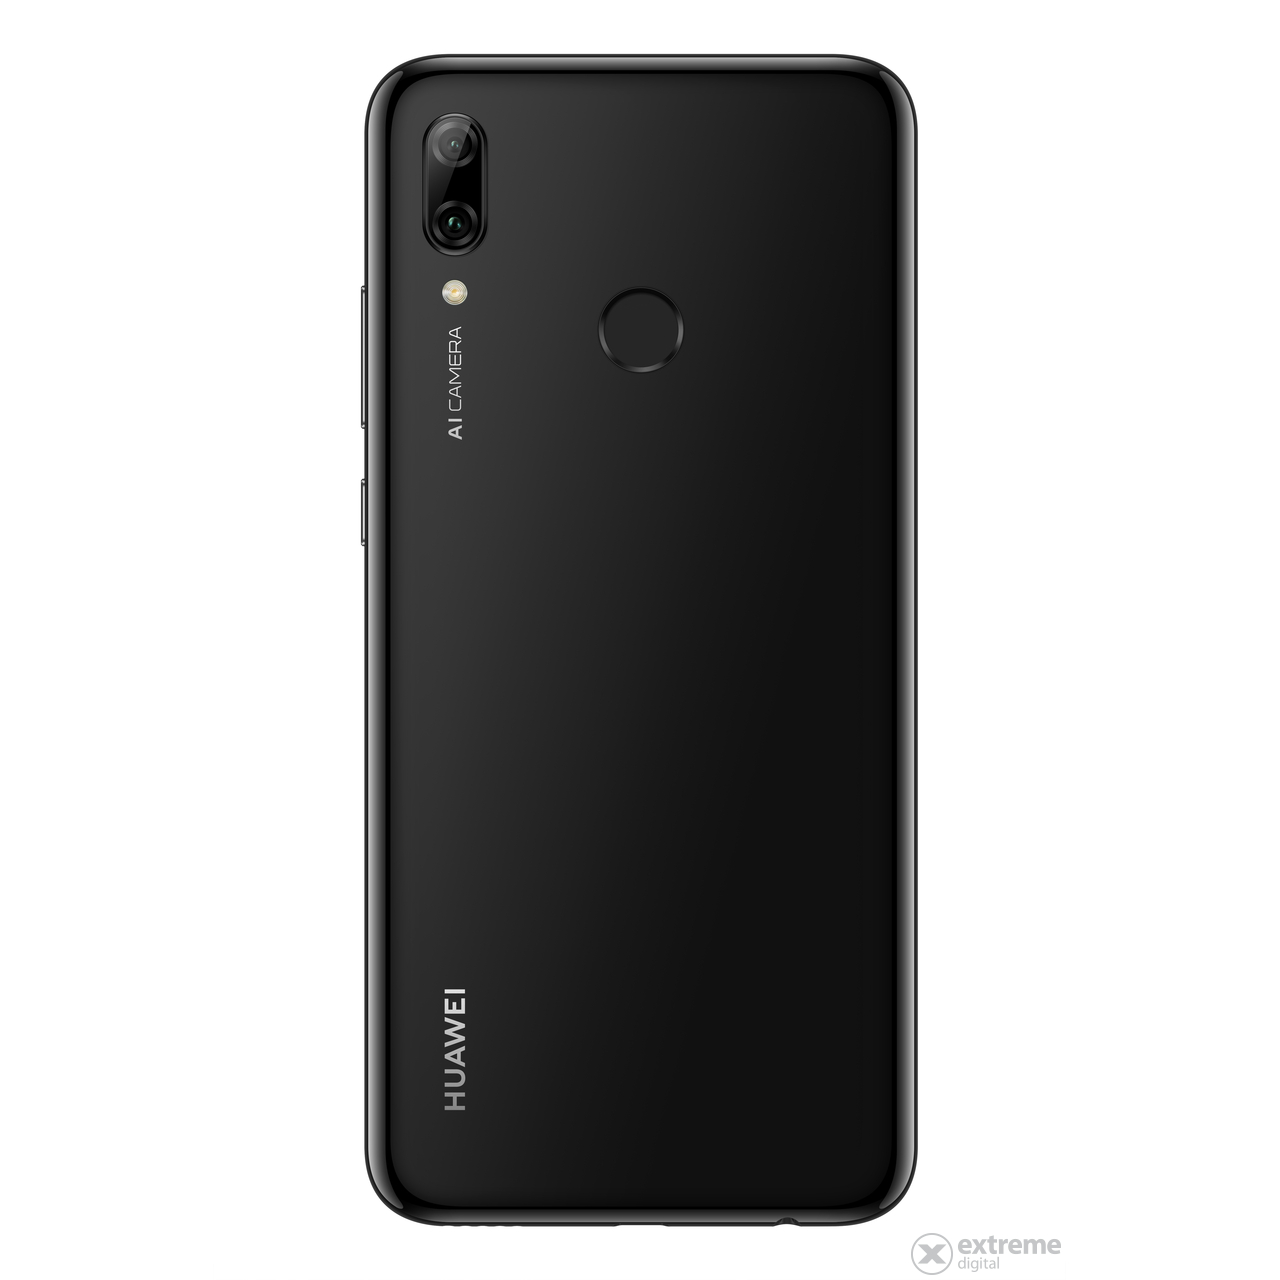 Huawei P смарт 2019 Dual SIM  смартфон, Midnight Black (Android)